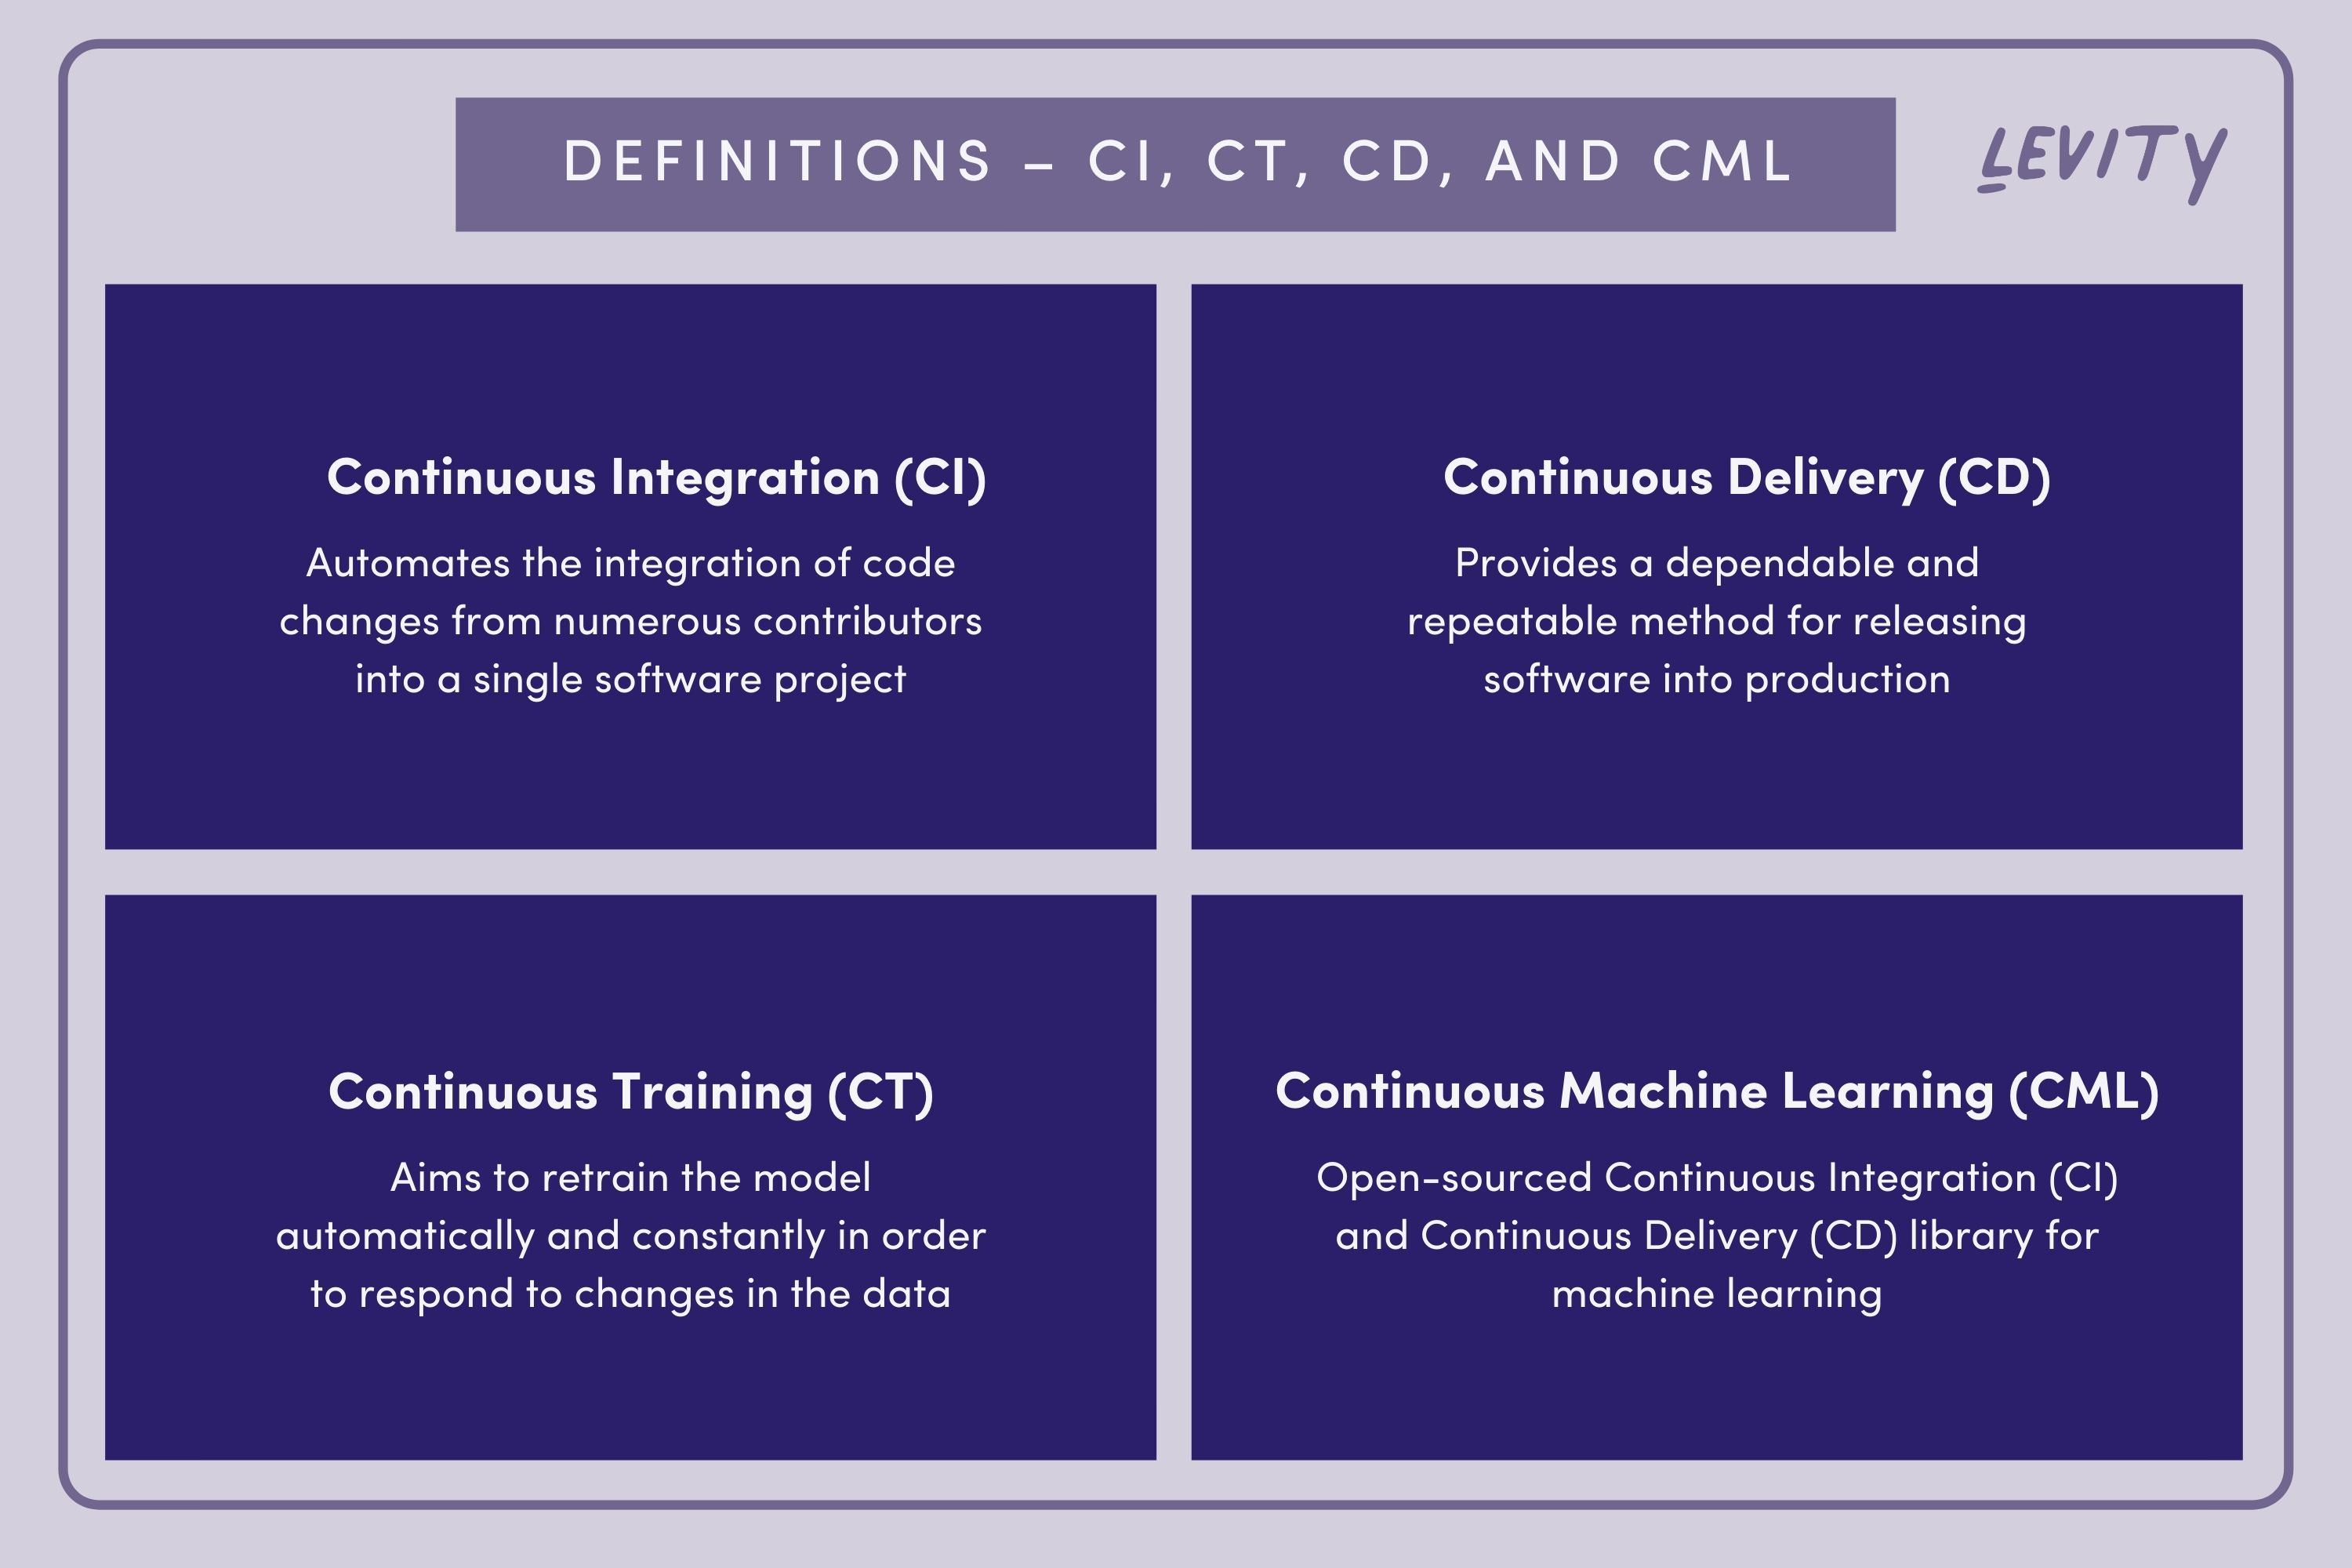 Definitions – CI, CT, CD, and CML